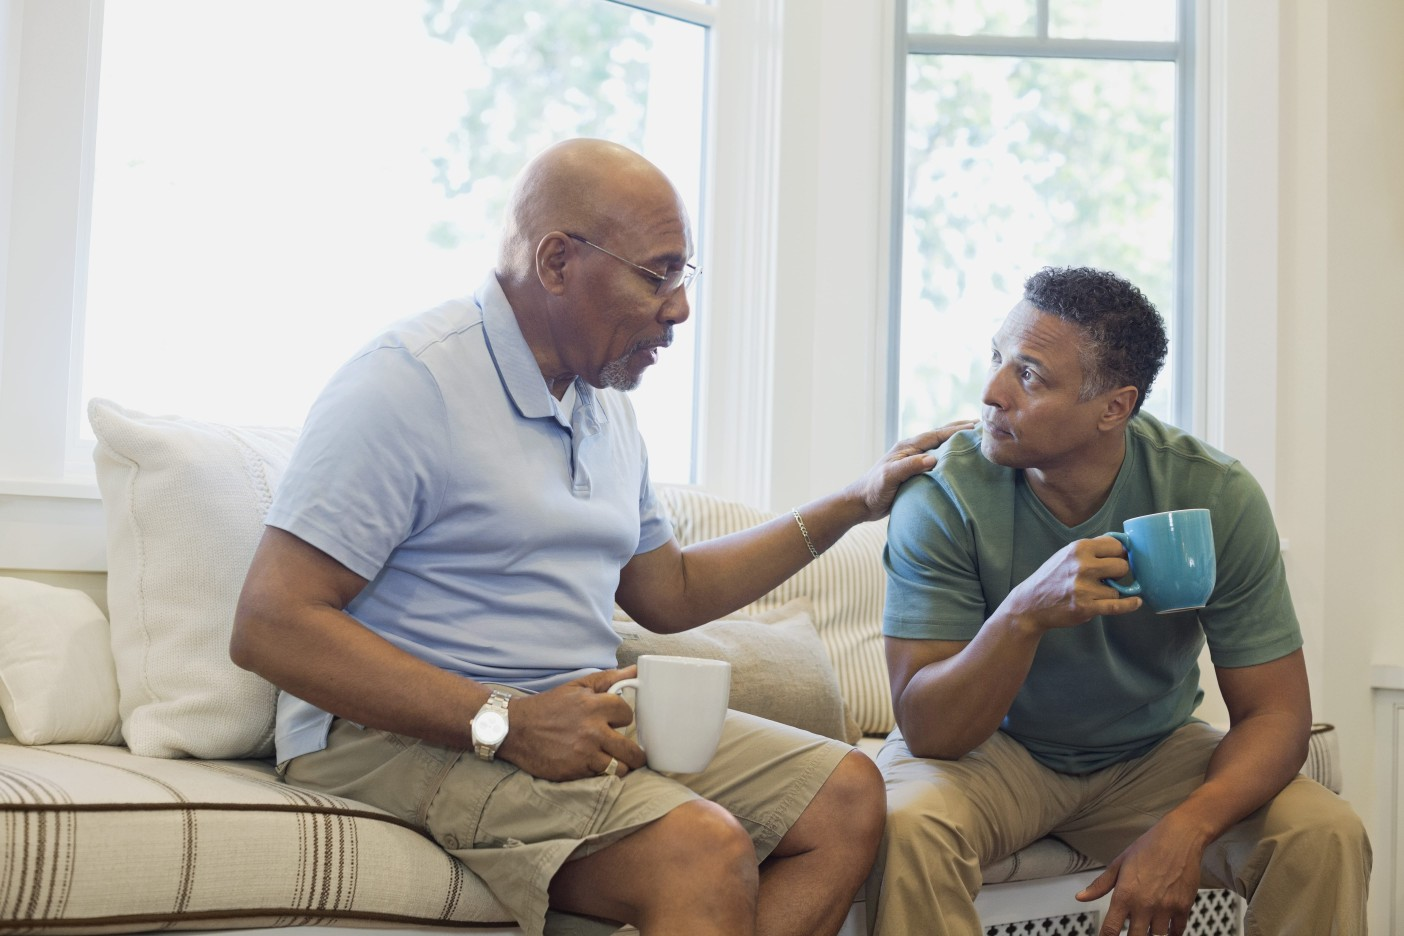 Two men with coffee discuss gastrointestinal cancer support groups in a well lit living room